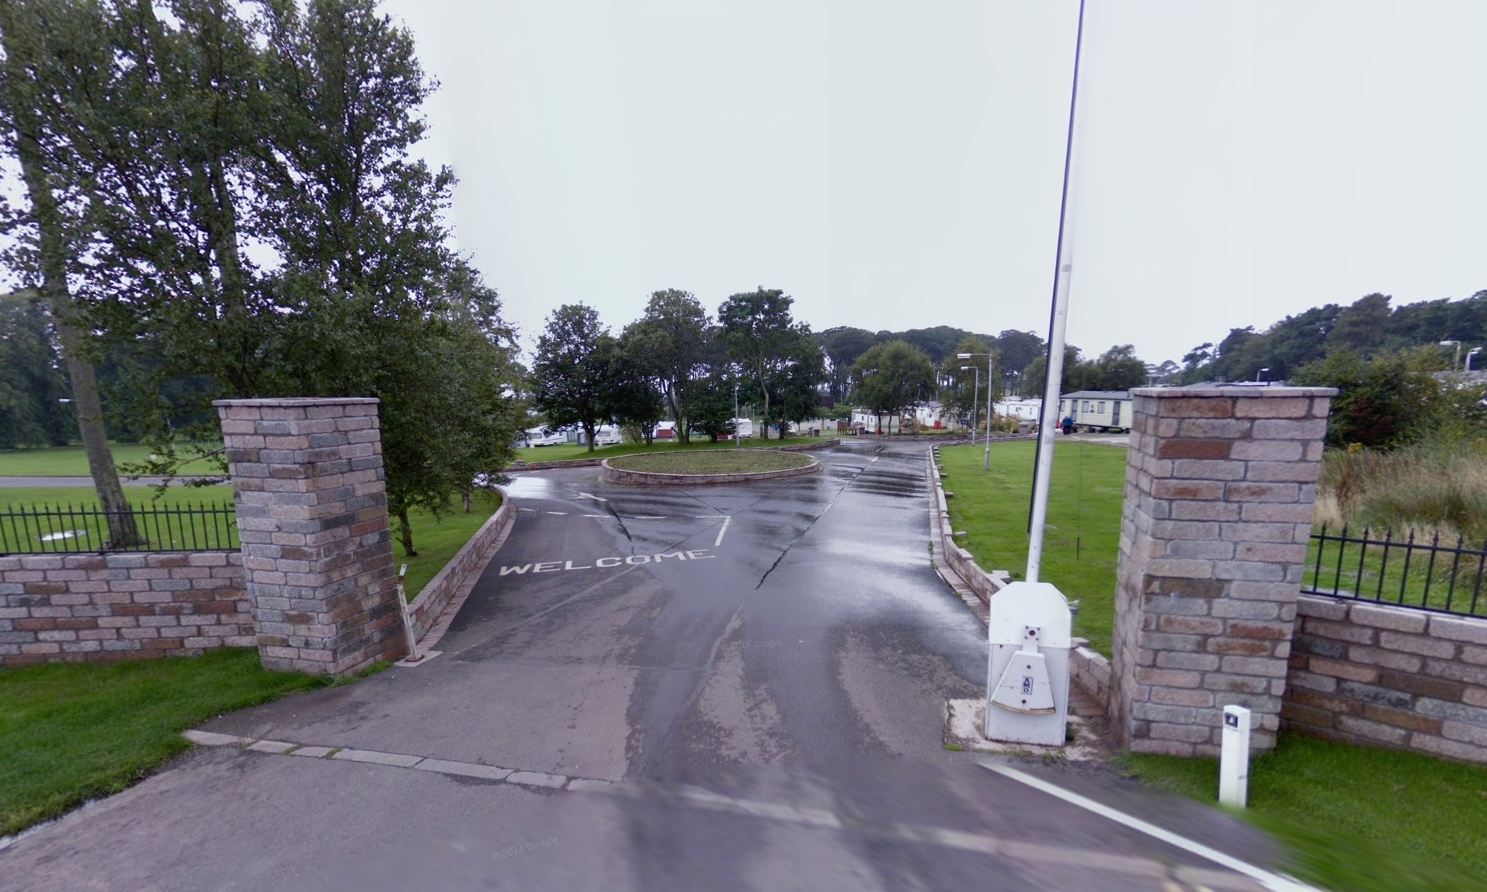 The entrance to the Seaton Estate holiday park.